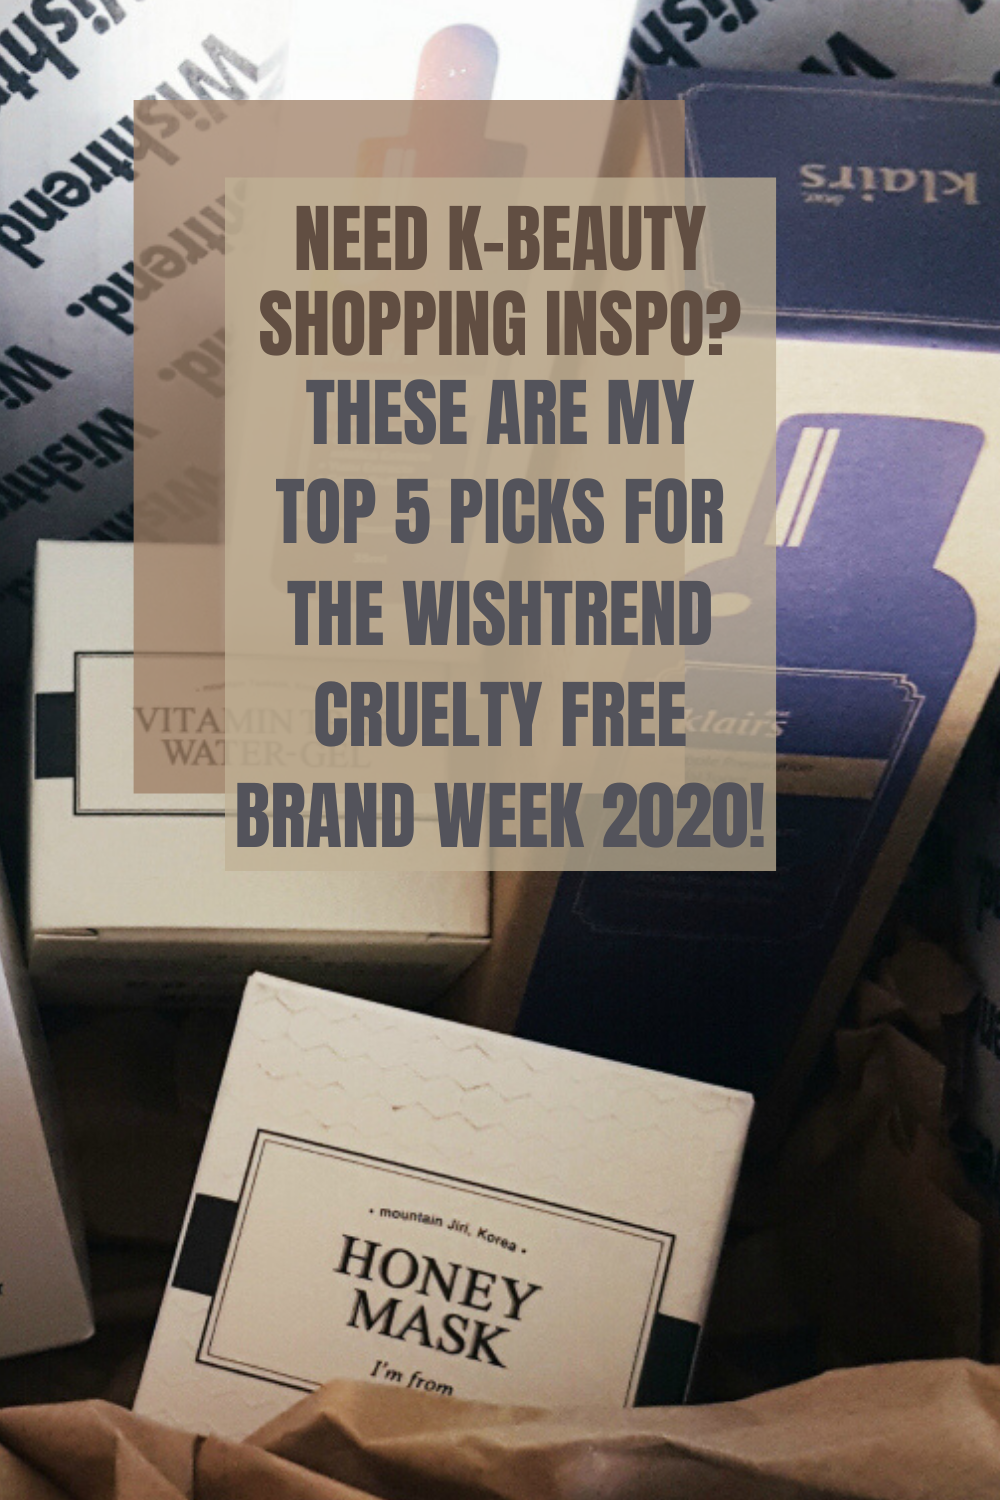 My TOP 5 Picks for the WISHTREND Cruelty Free Brand Week 2020!